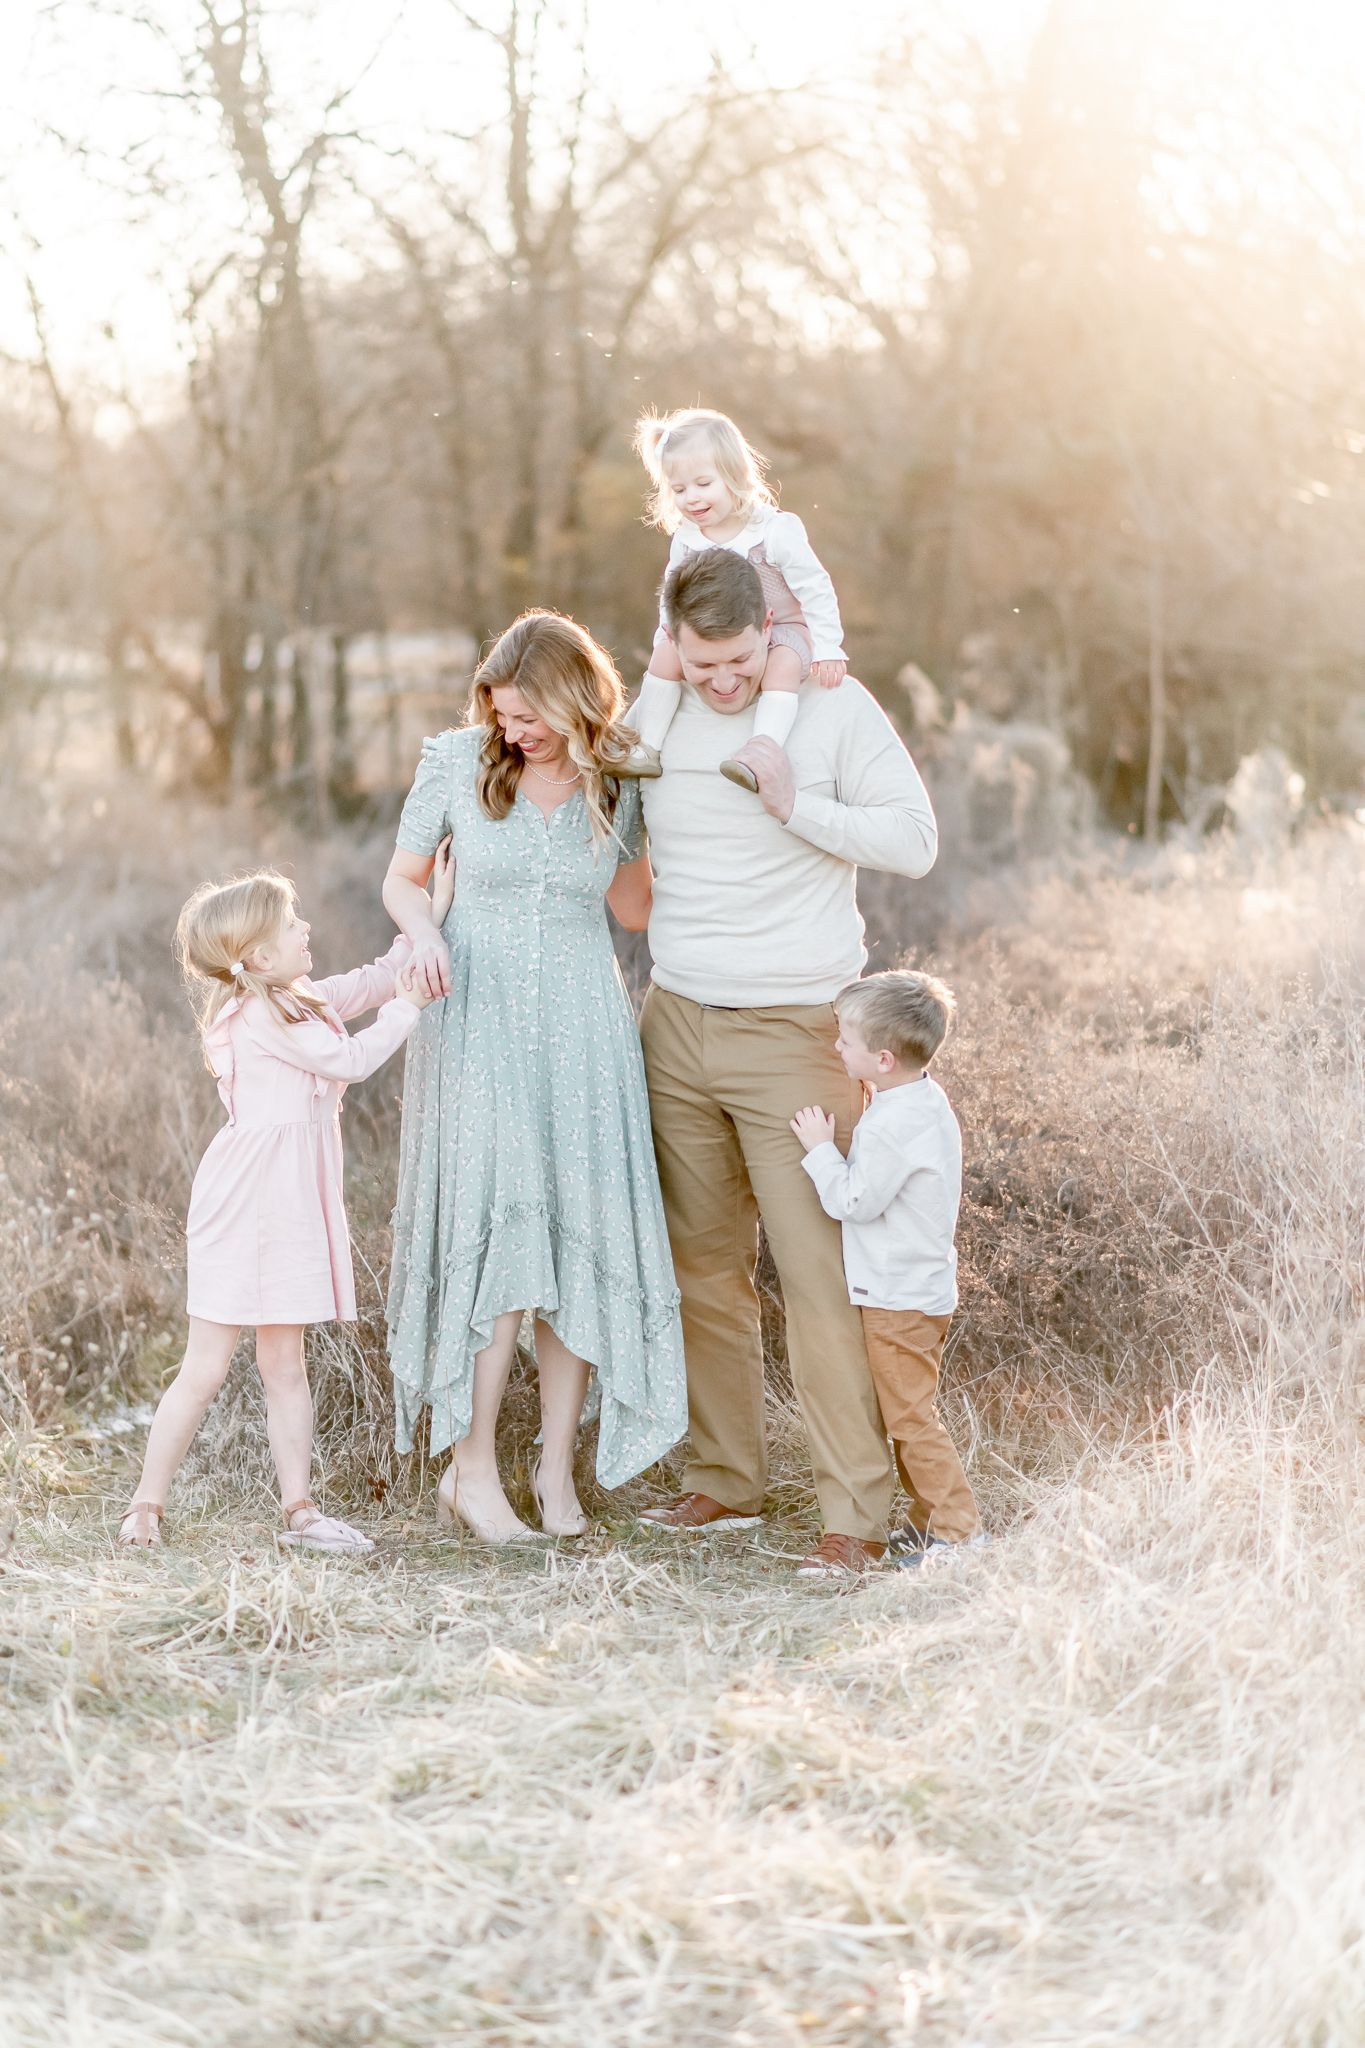 Family of 5 pose in a field with toddler on dad's shoulders